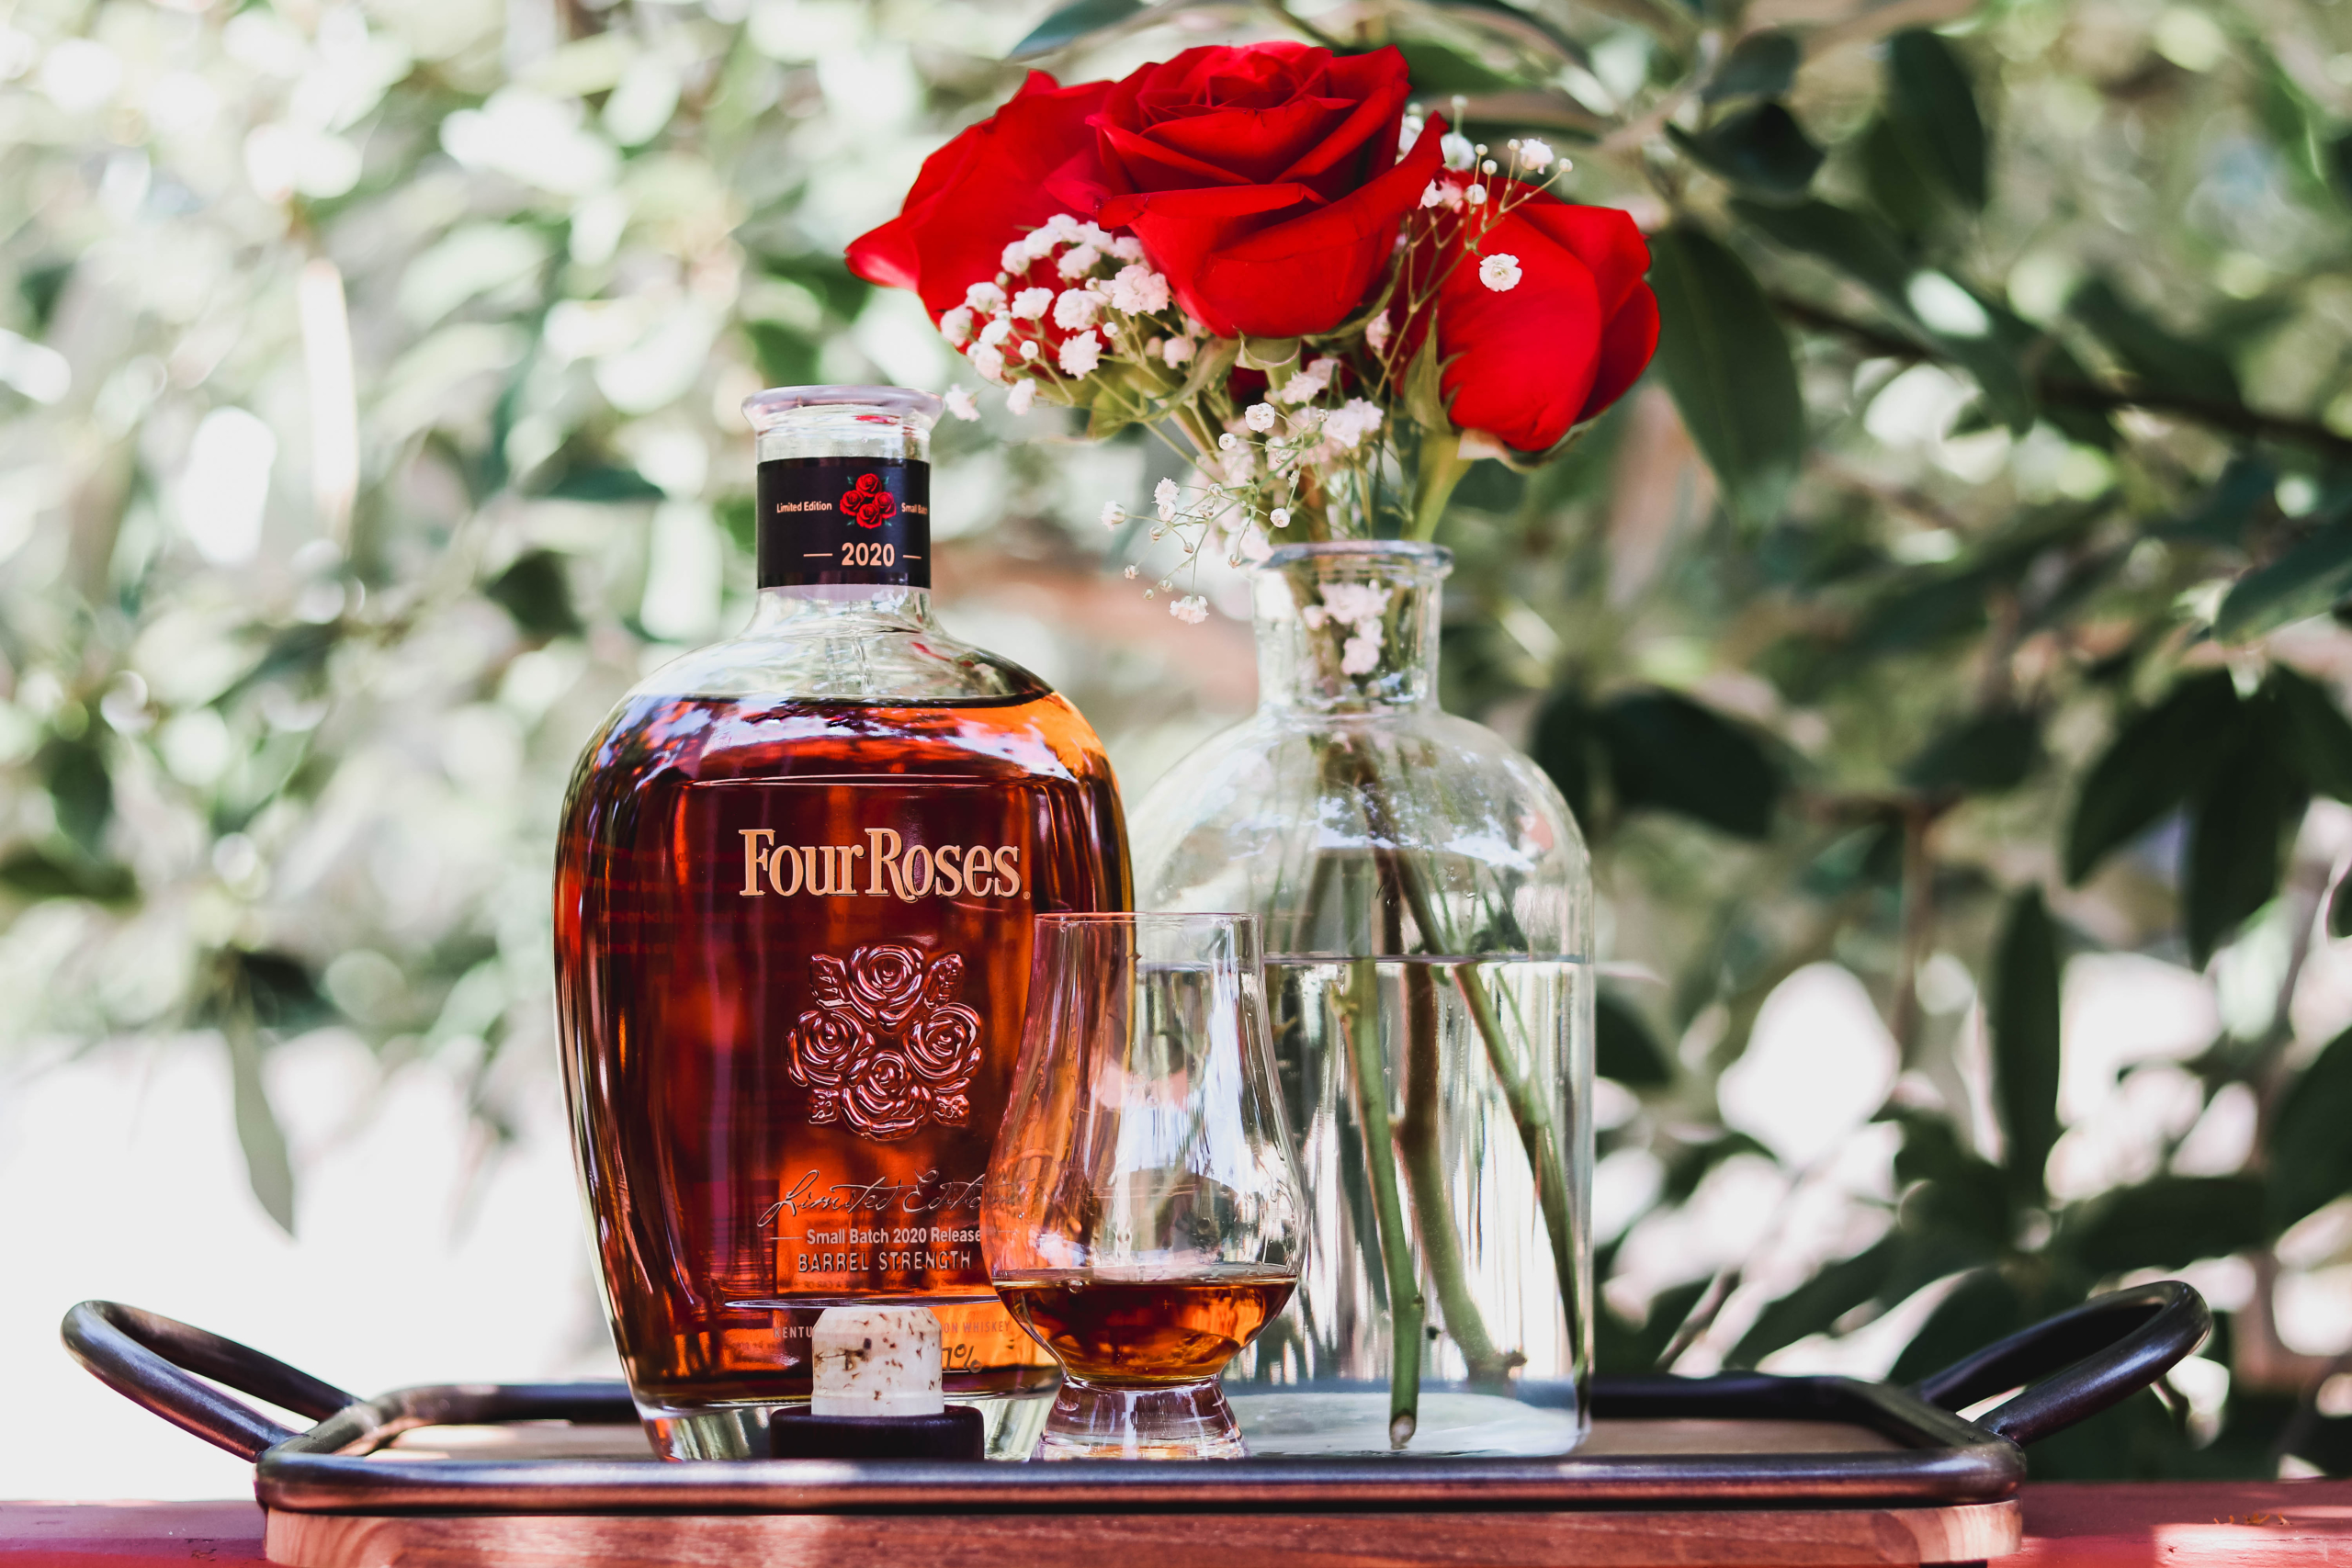 FR 2020LESmallBatch scaled - Four Roses' 2020 Limited Edition Small Batch launches in September